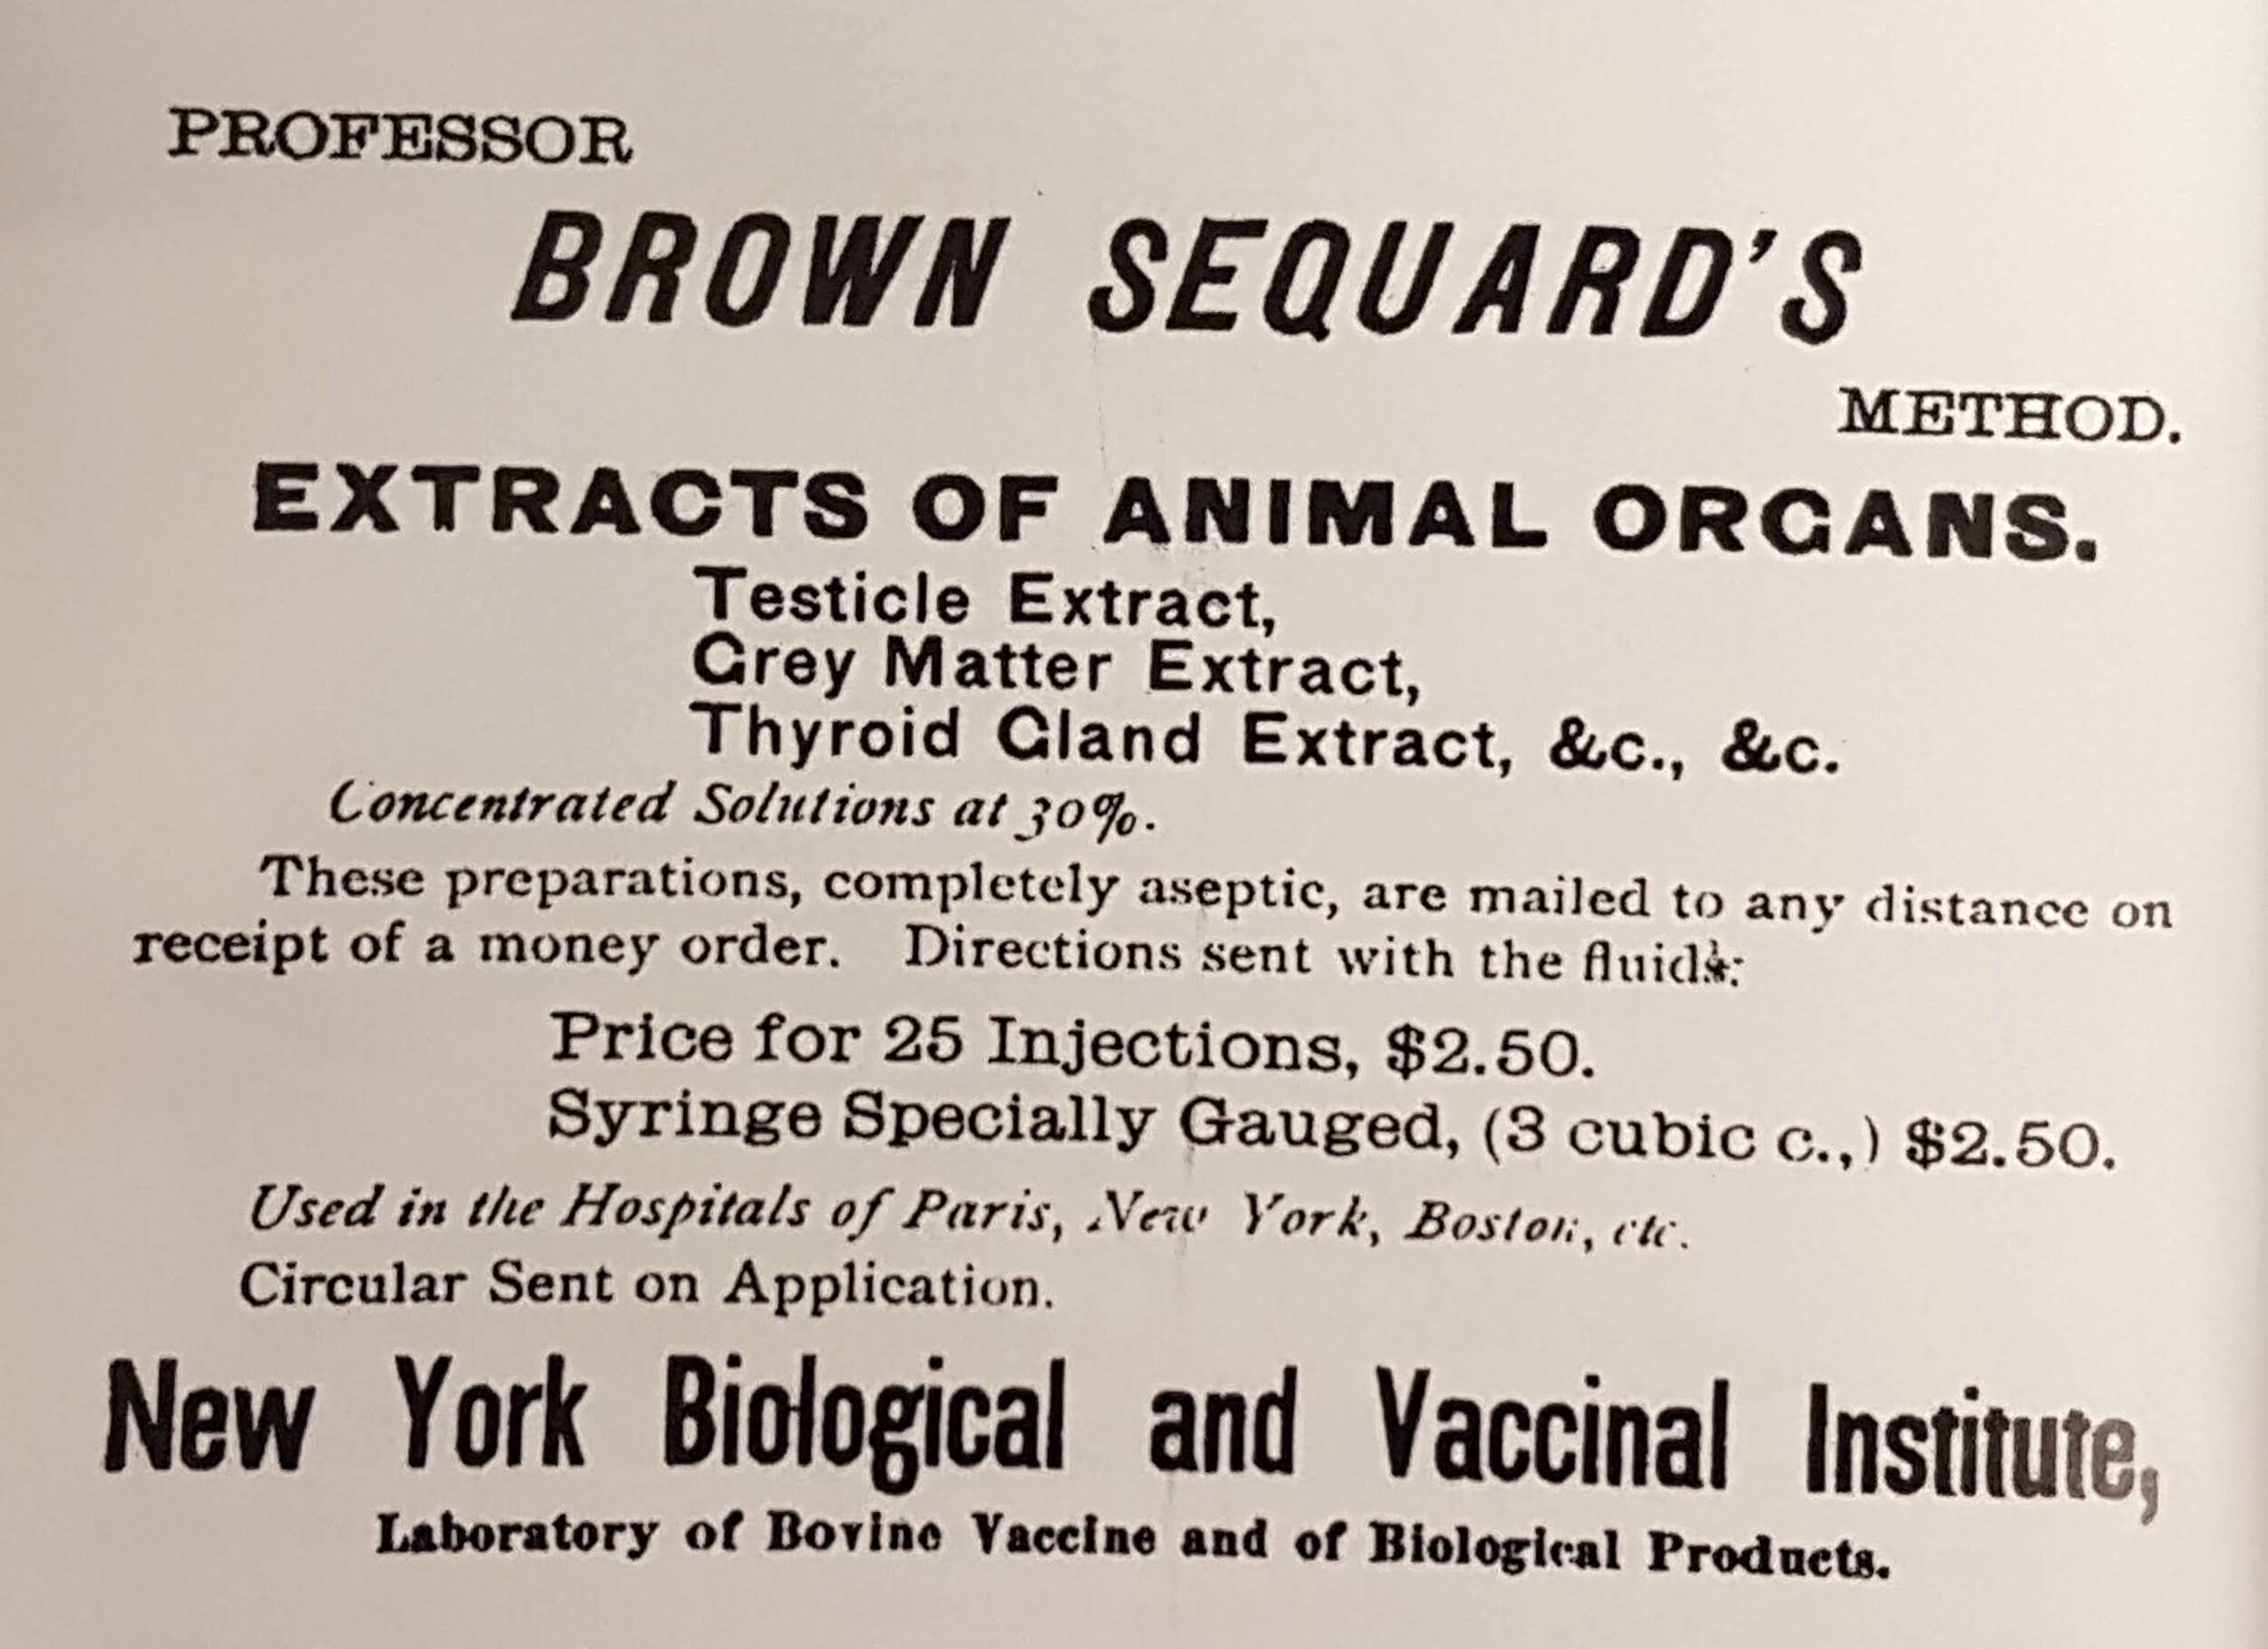 1893 advert for organ extracts